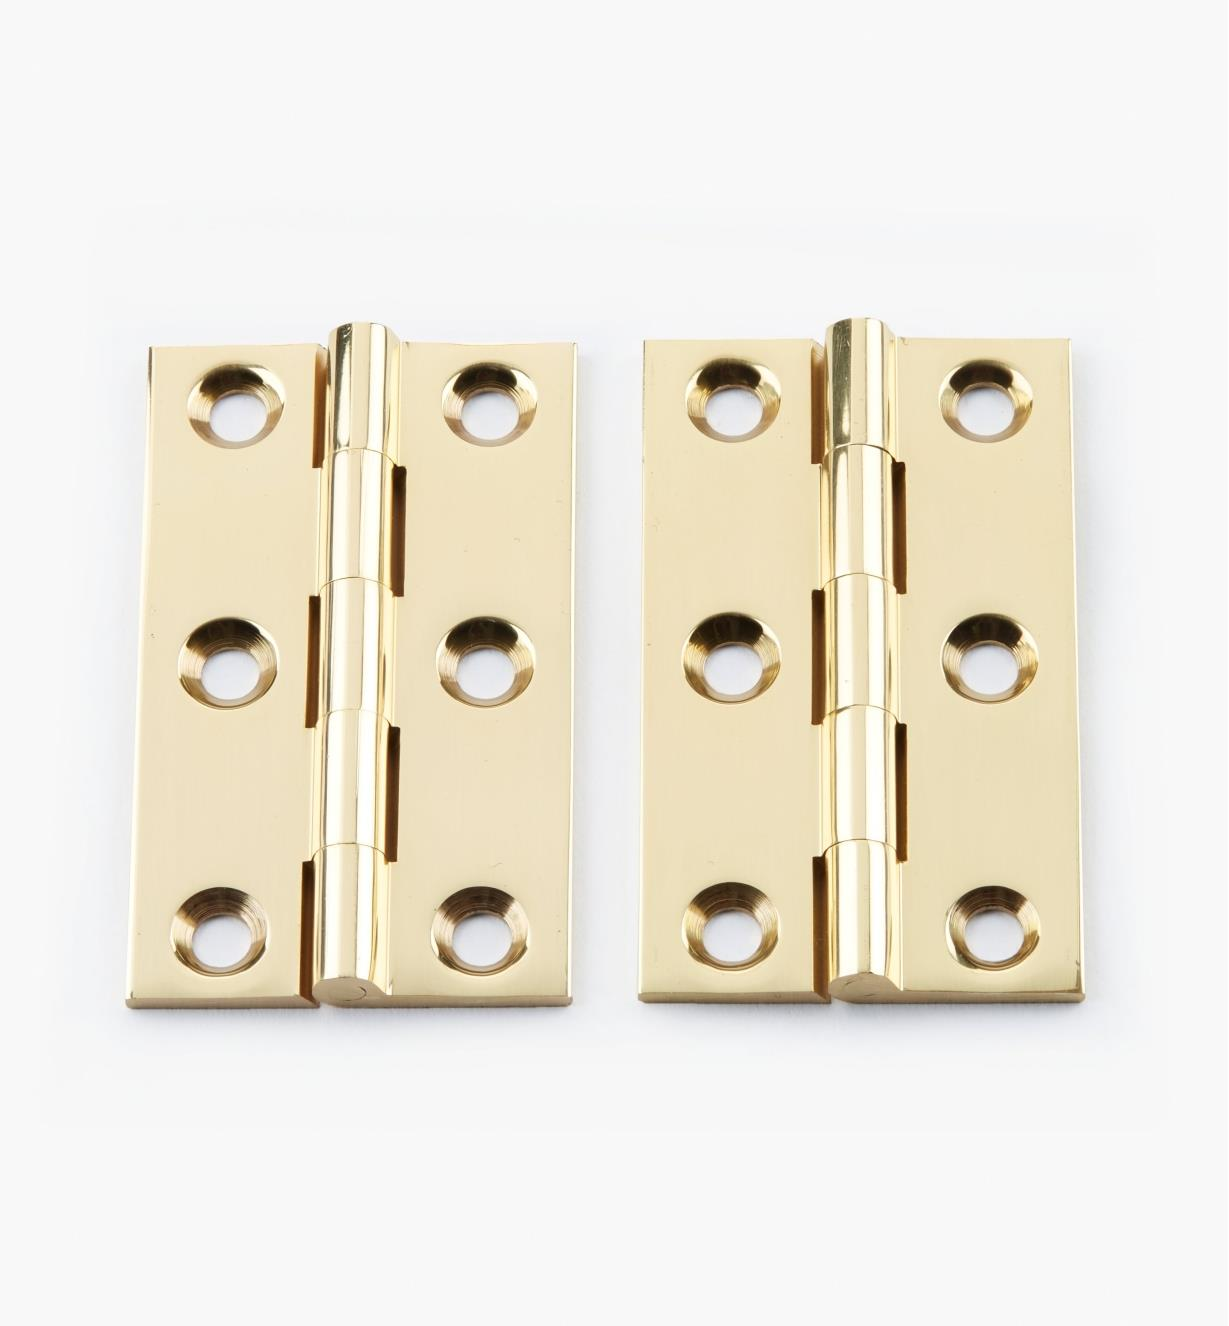 "00D0303 - 2 1/2"" × 1 1/2"" Extruded Brass Fixed-Pin Butt Hinges, pr."